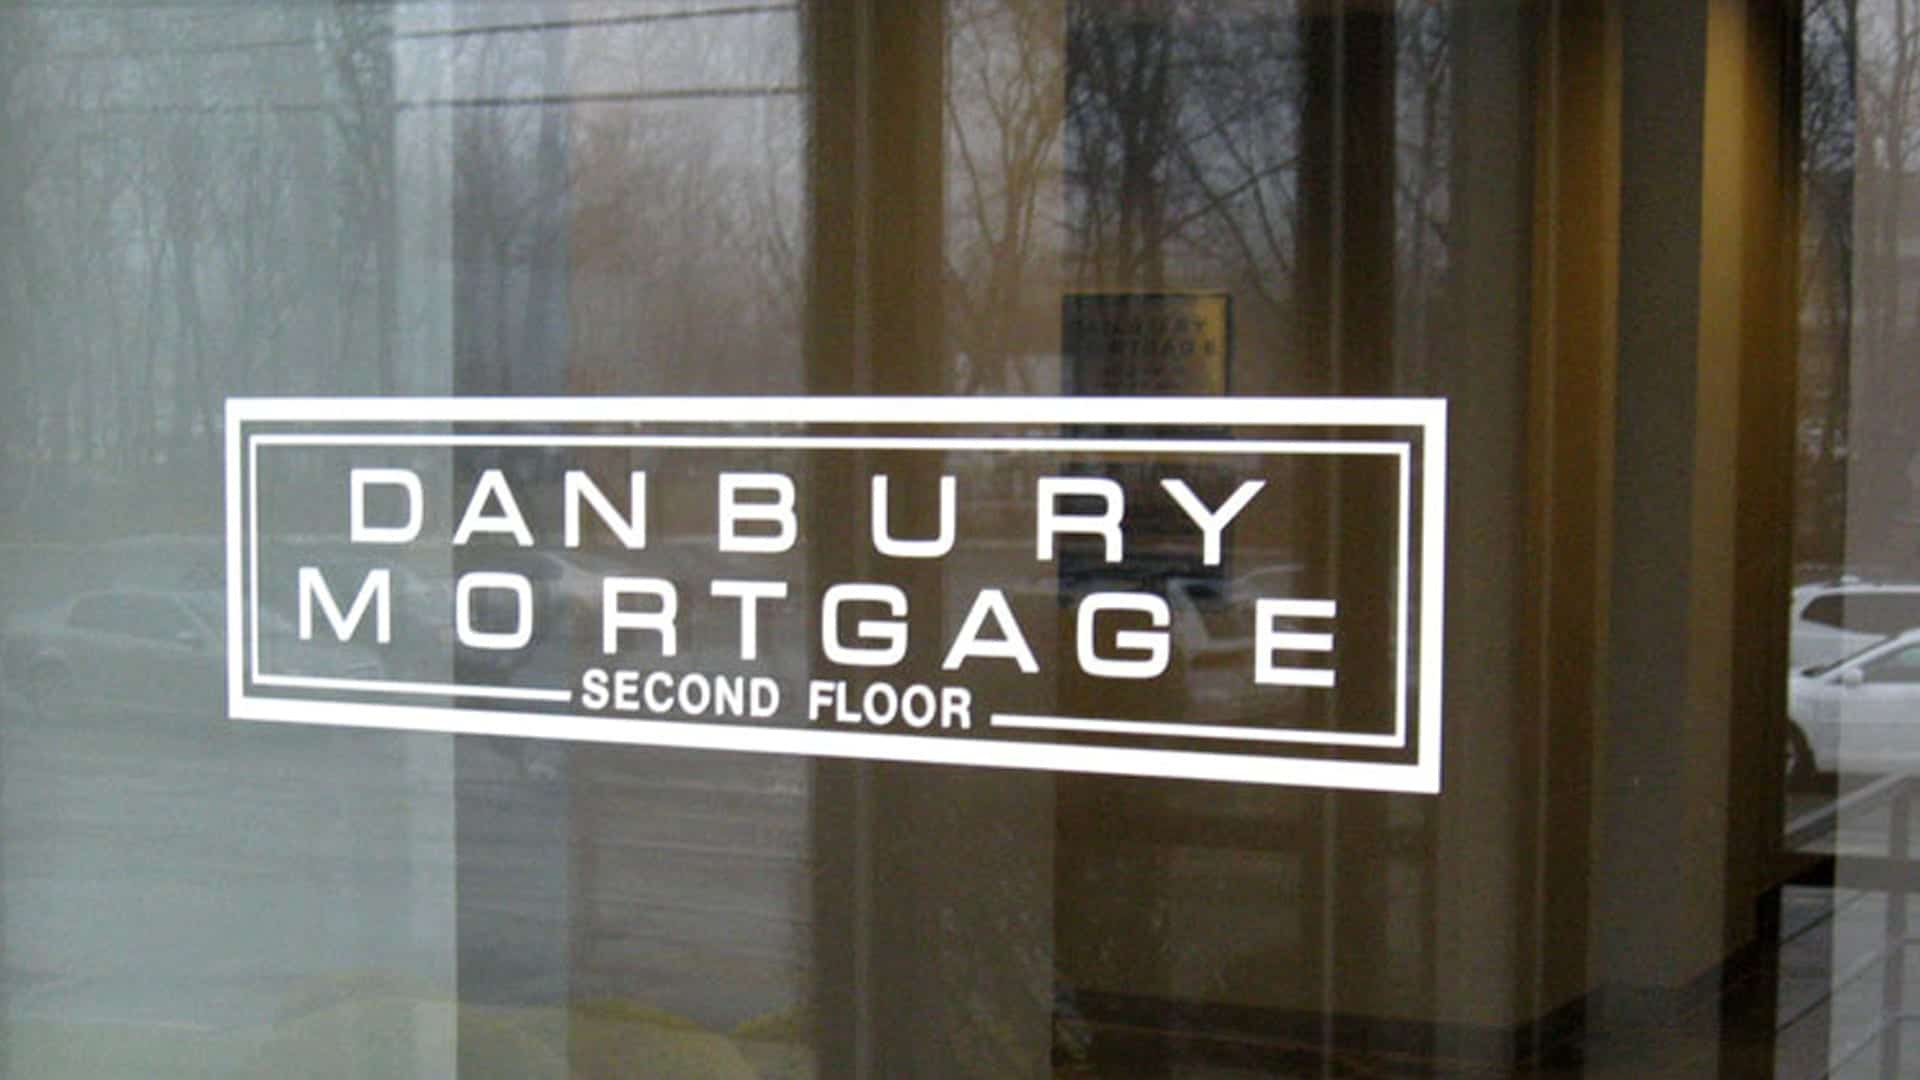 Danbury Mortgage - Door Vinyl - Vinyl Lettering